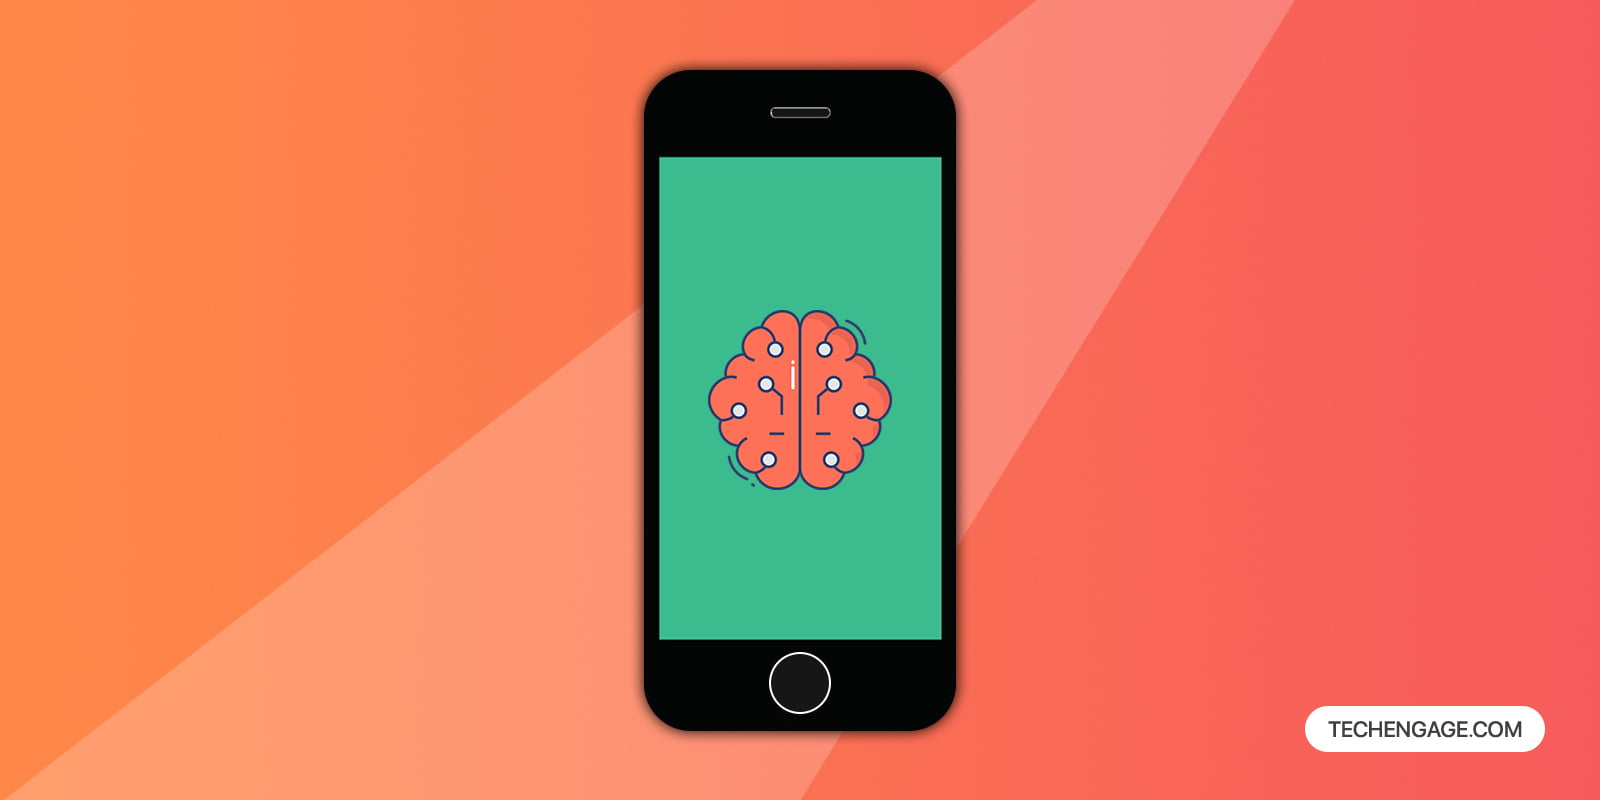 10 best mental health apps 2021